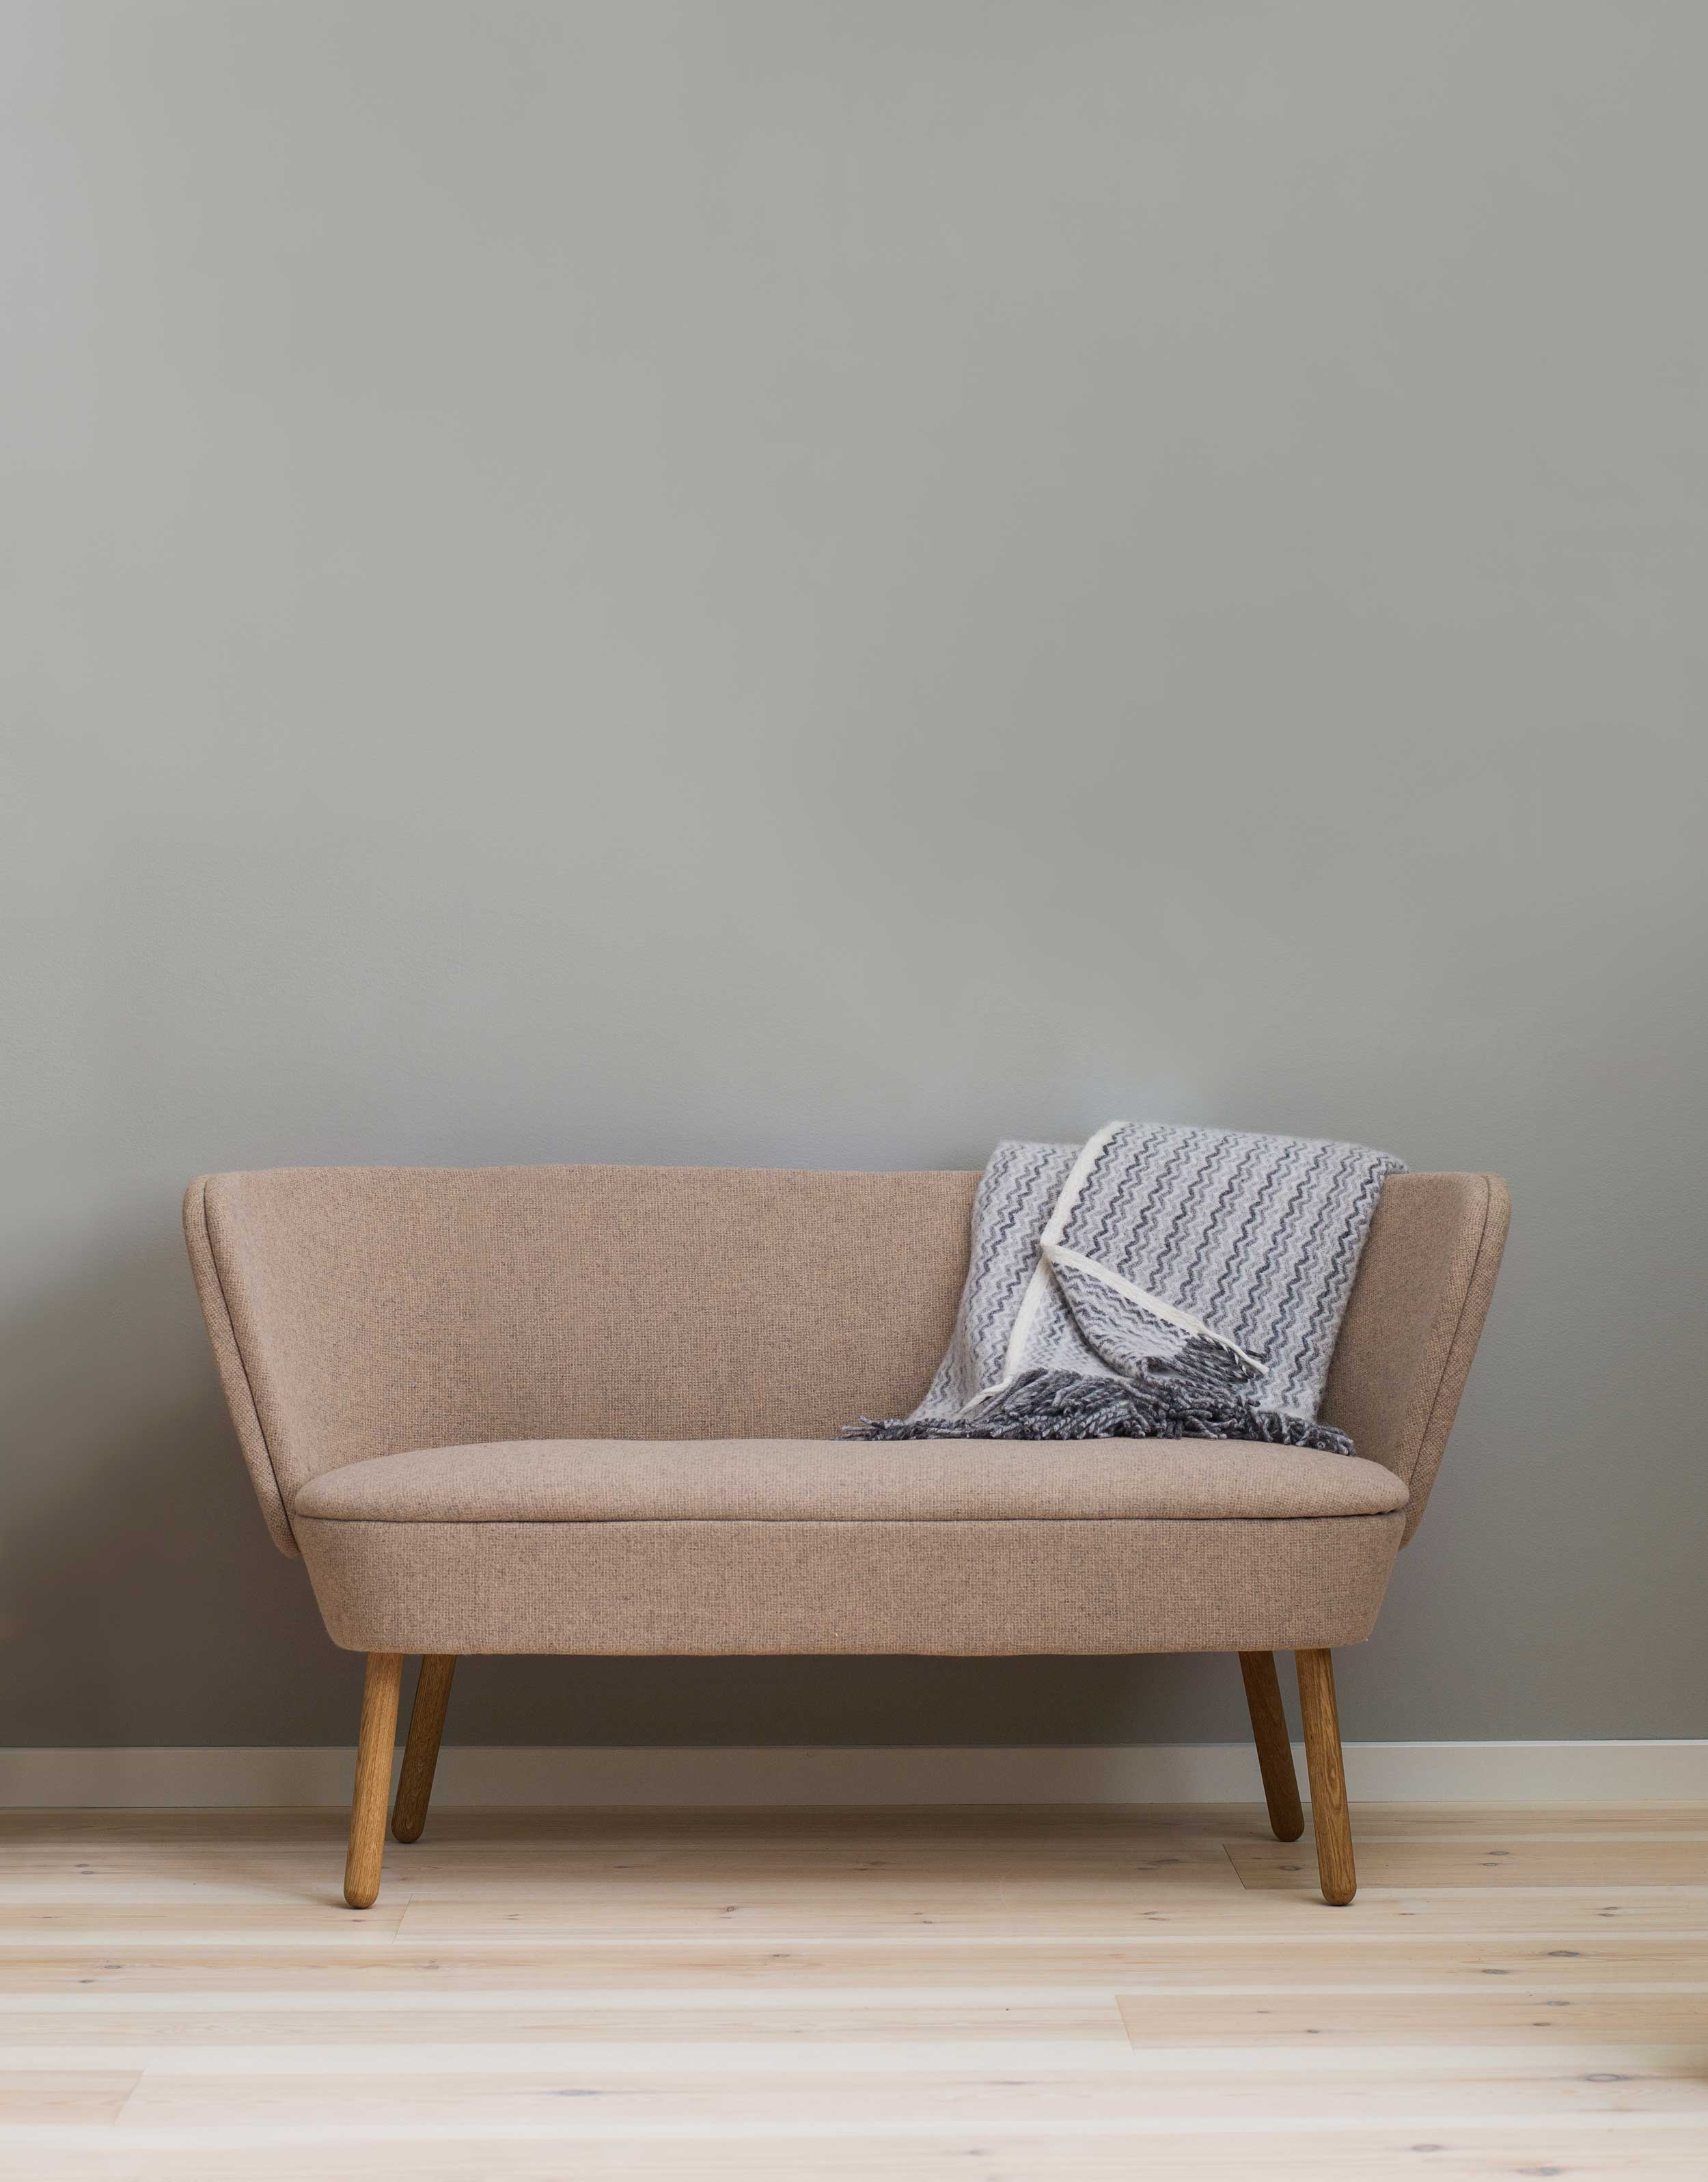 Futon World Berlin Stolab Presents New Wrap Sofa At This Year S Stockholm Furniture